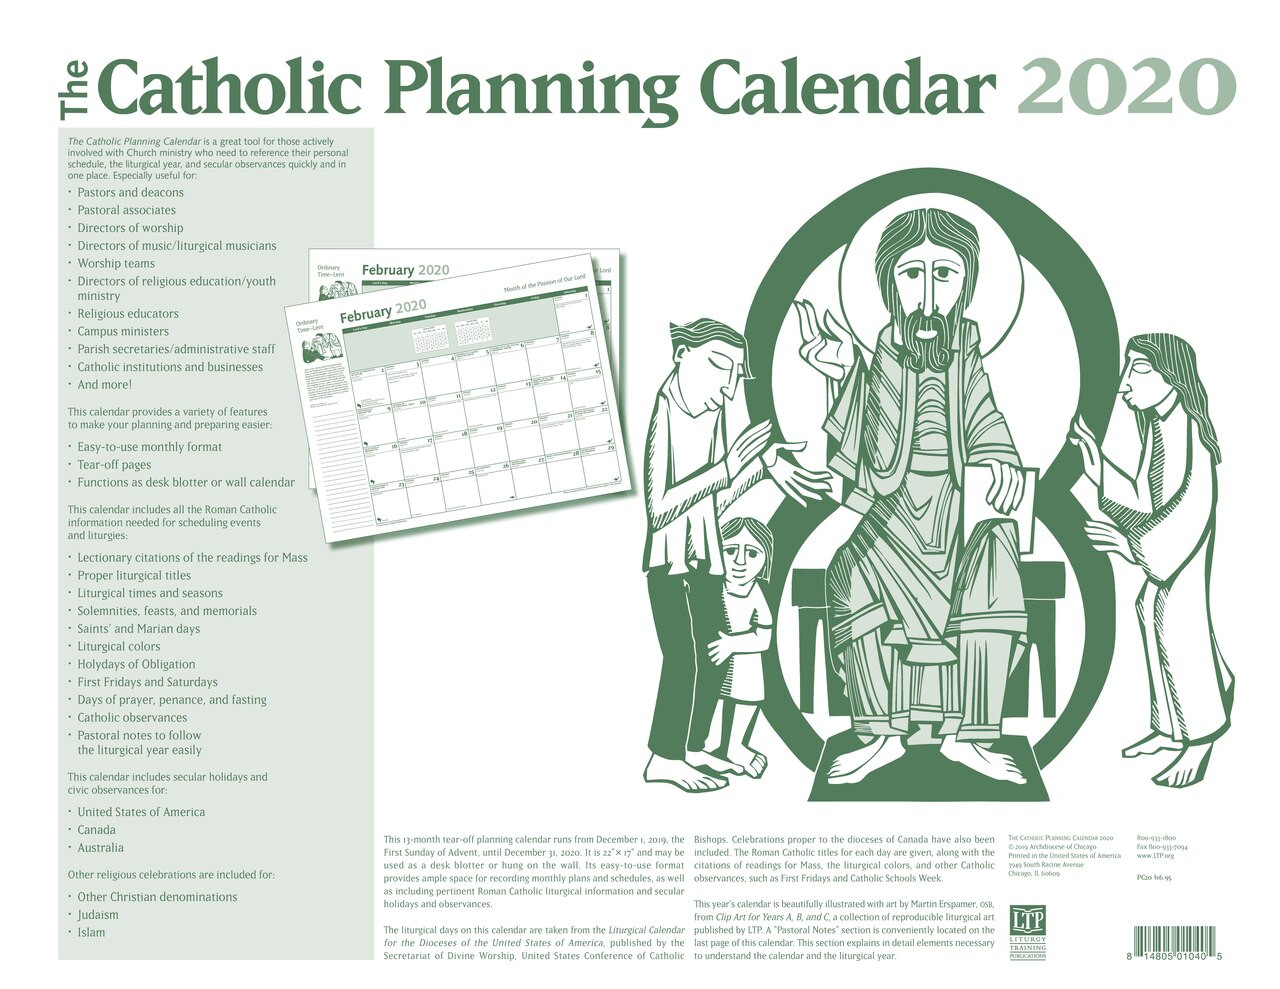 Roman Catholic Liturgical Calendar 2020 2020 Catholic Planning Calendar | Liturgical Year | 13 Month | 17